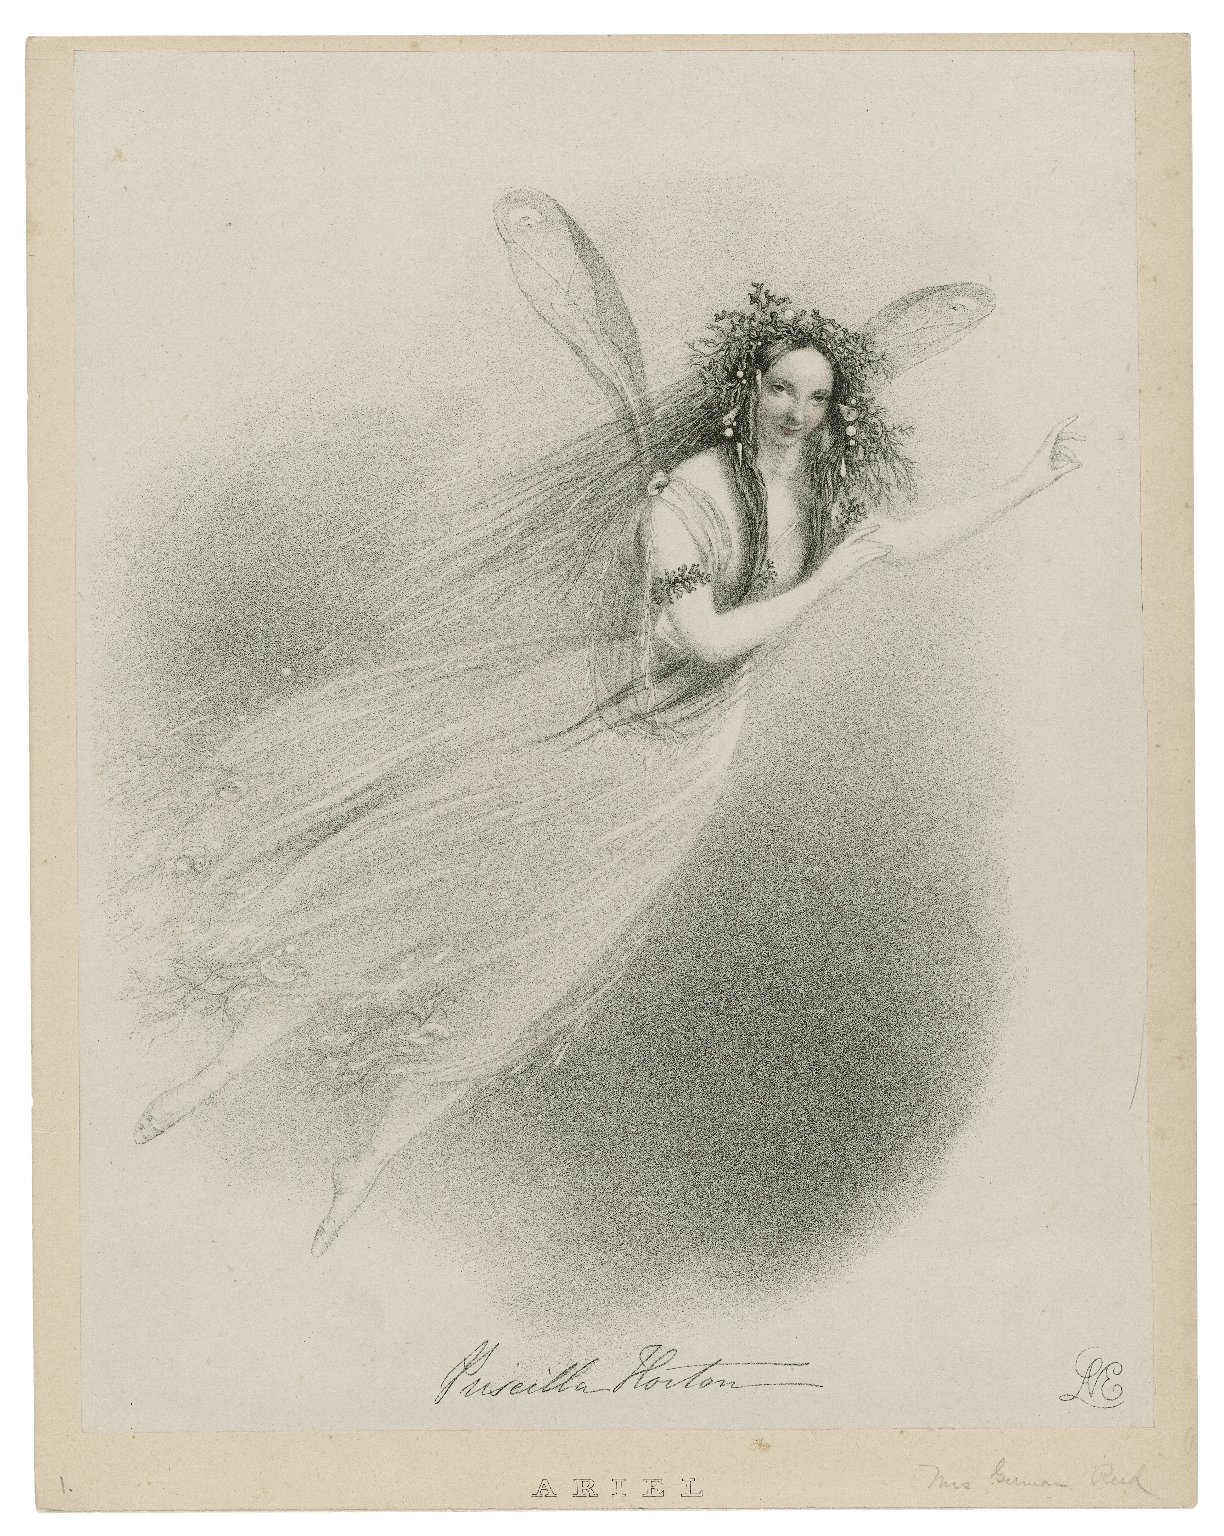 Priscilla Horton [as] Ariel [graphic] : Tempest, act 5, sc. last / Lane ; J. Graf, printer to Her Majesty.